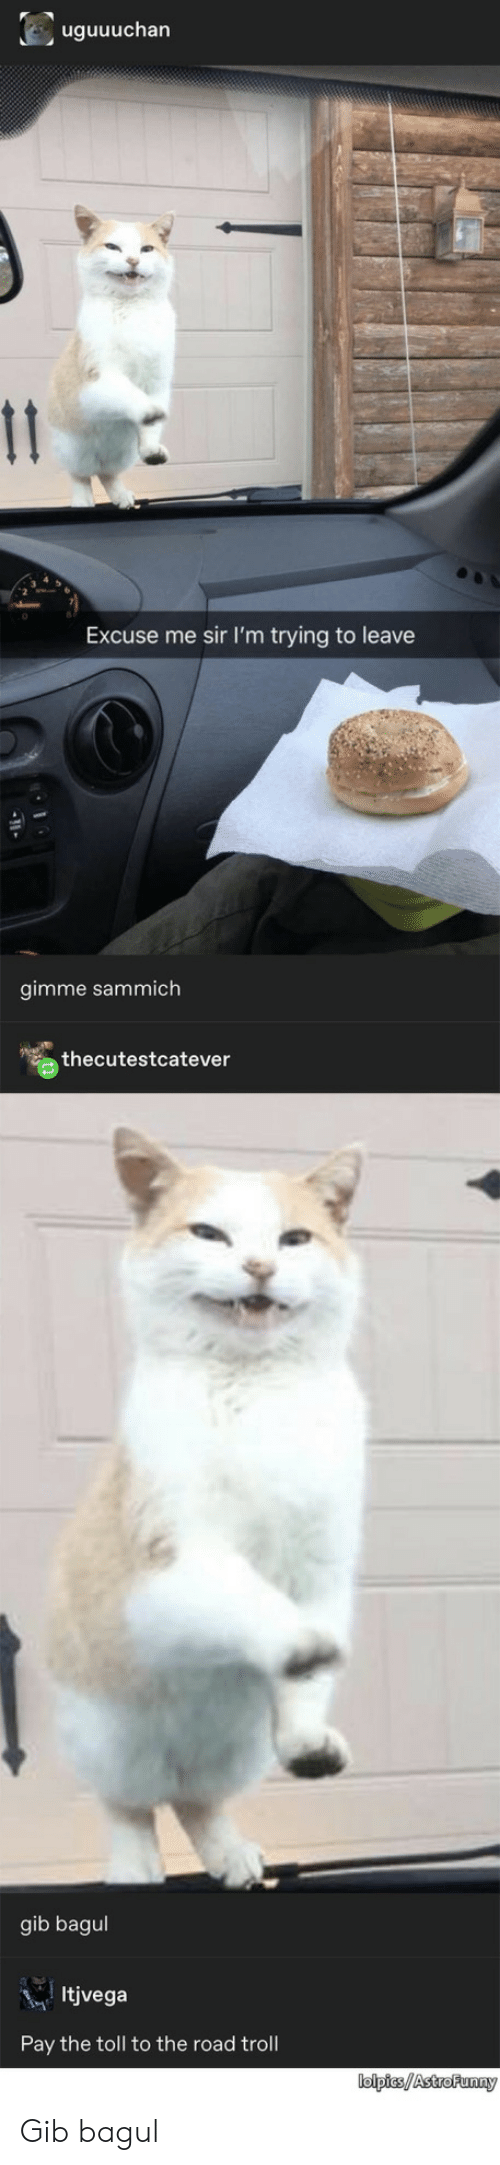 Troll, The Road, and Sir: uguuuchan  11  Excuse me sir I'm trying to leave  gimme sammich  thecutestcatever  gib bagul  Itjvega  Pay the toll to the road troll  lolpies/AstroFunny Gib bagul